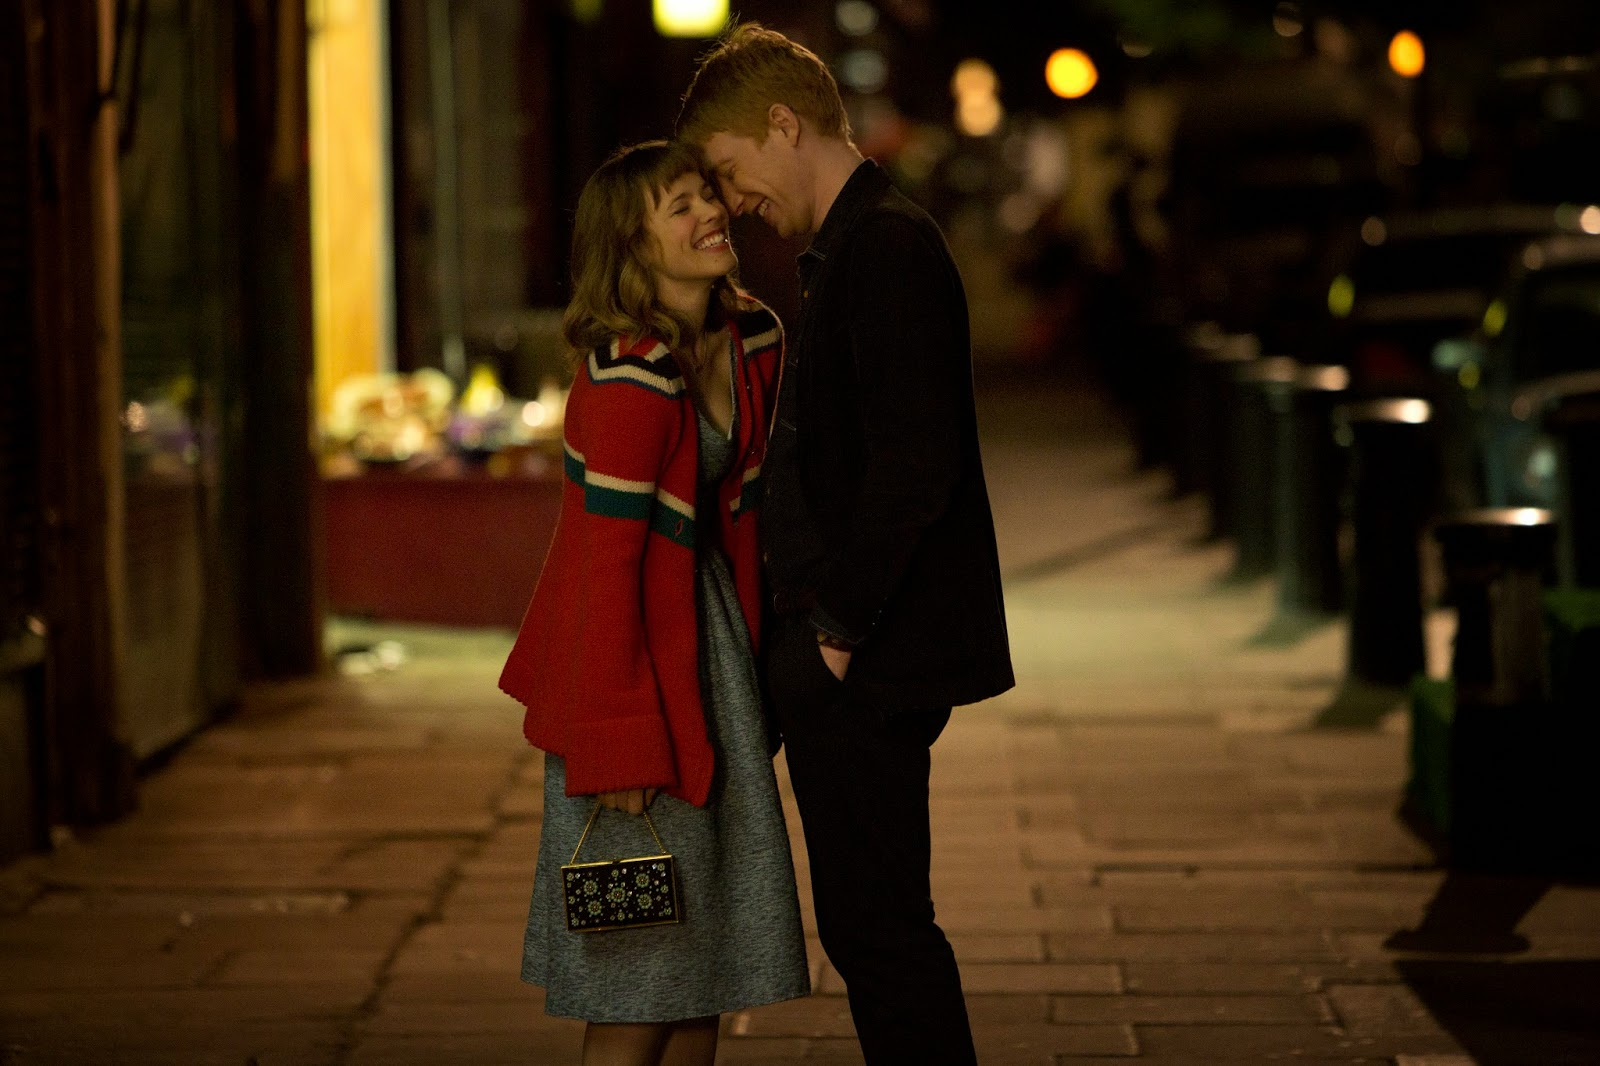 AboutTime-Still4